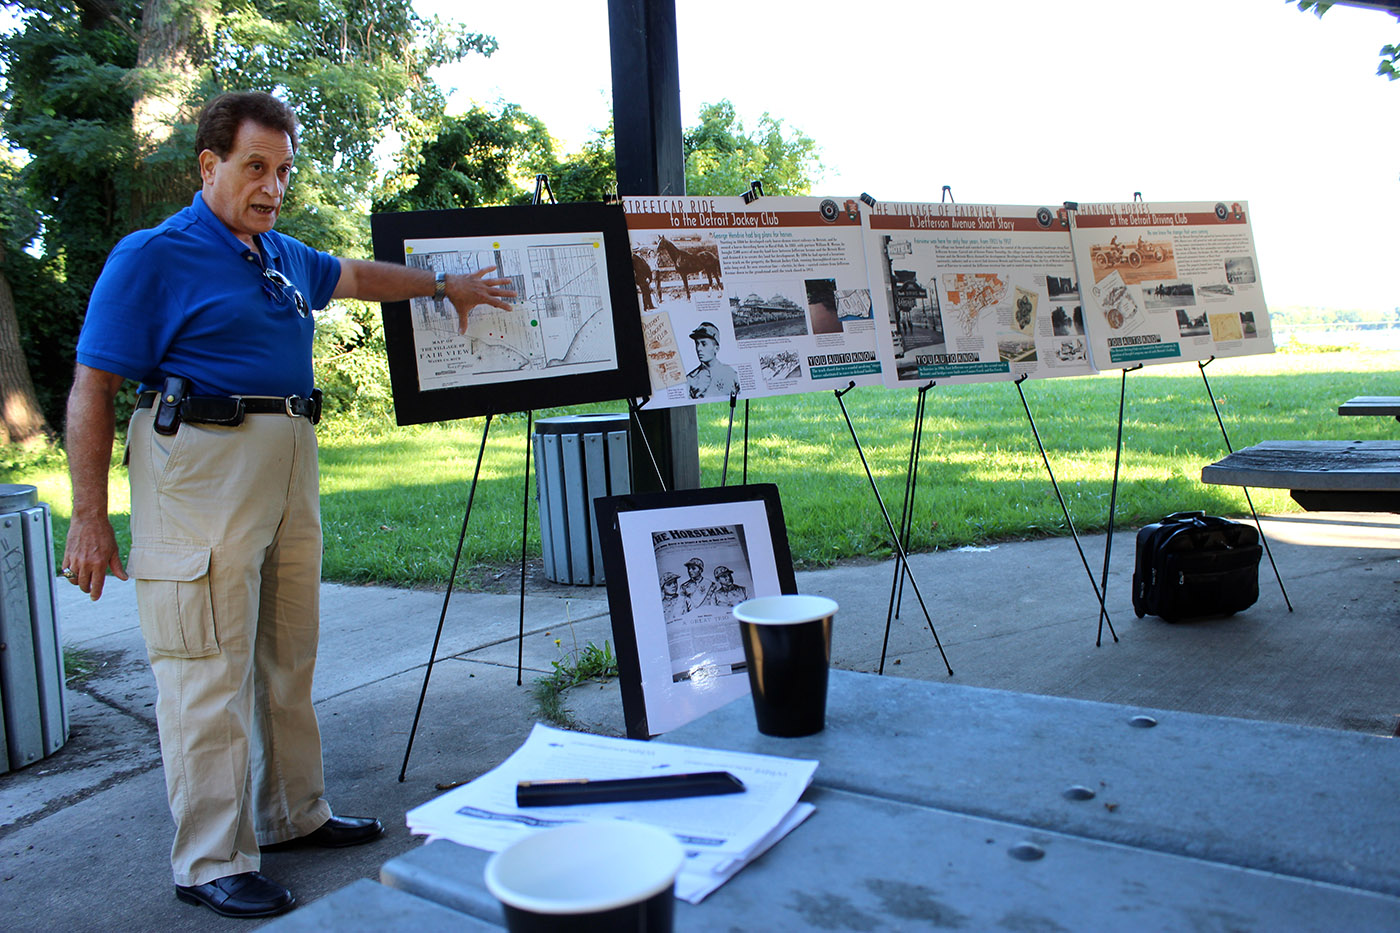 Local historian Nick Sinacori holds forth on historical fact and errata.